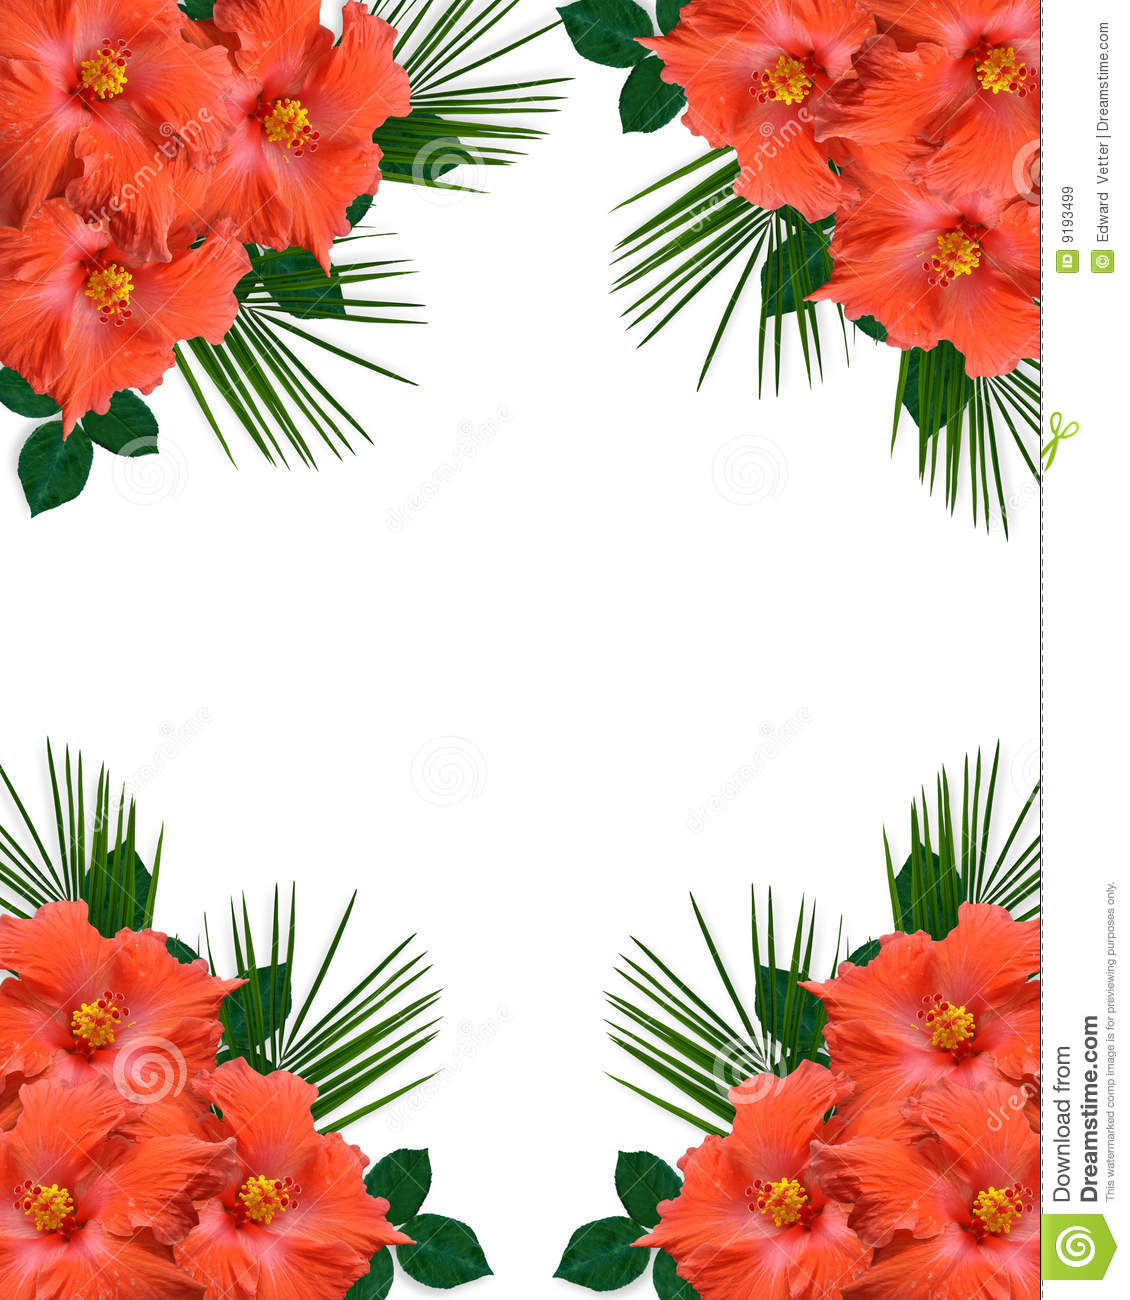 Free pictures of tropical flowers clip art transparent Hibiscus Tropical Flowers Border Royalty Free Stock Images - Image ... clip art transparent